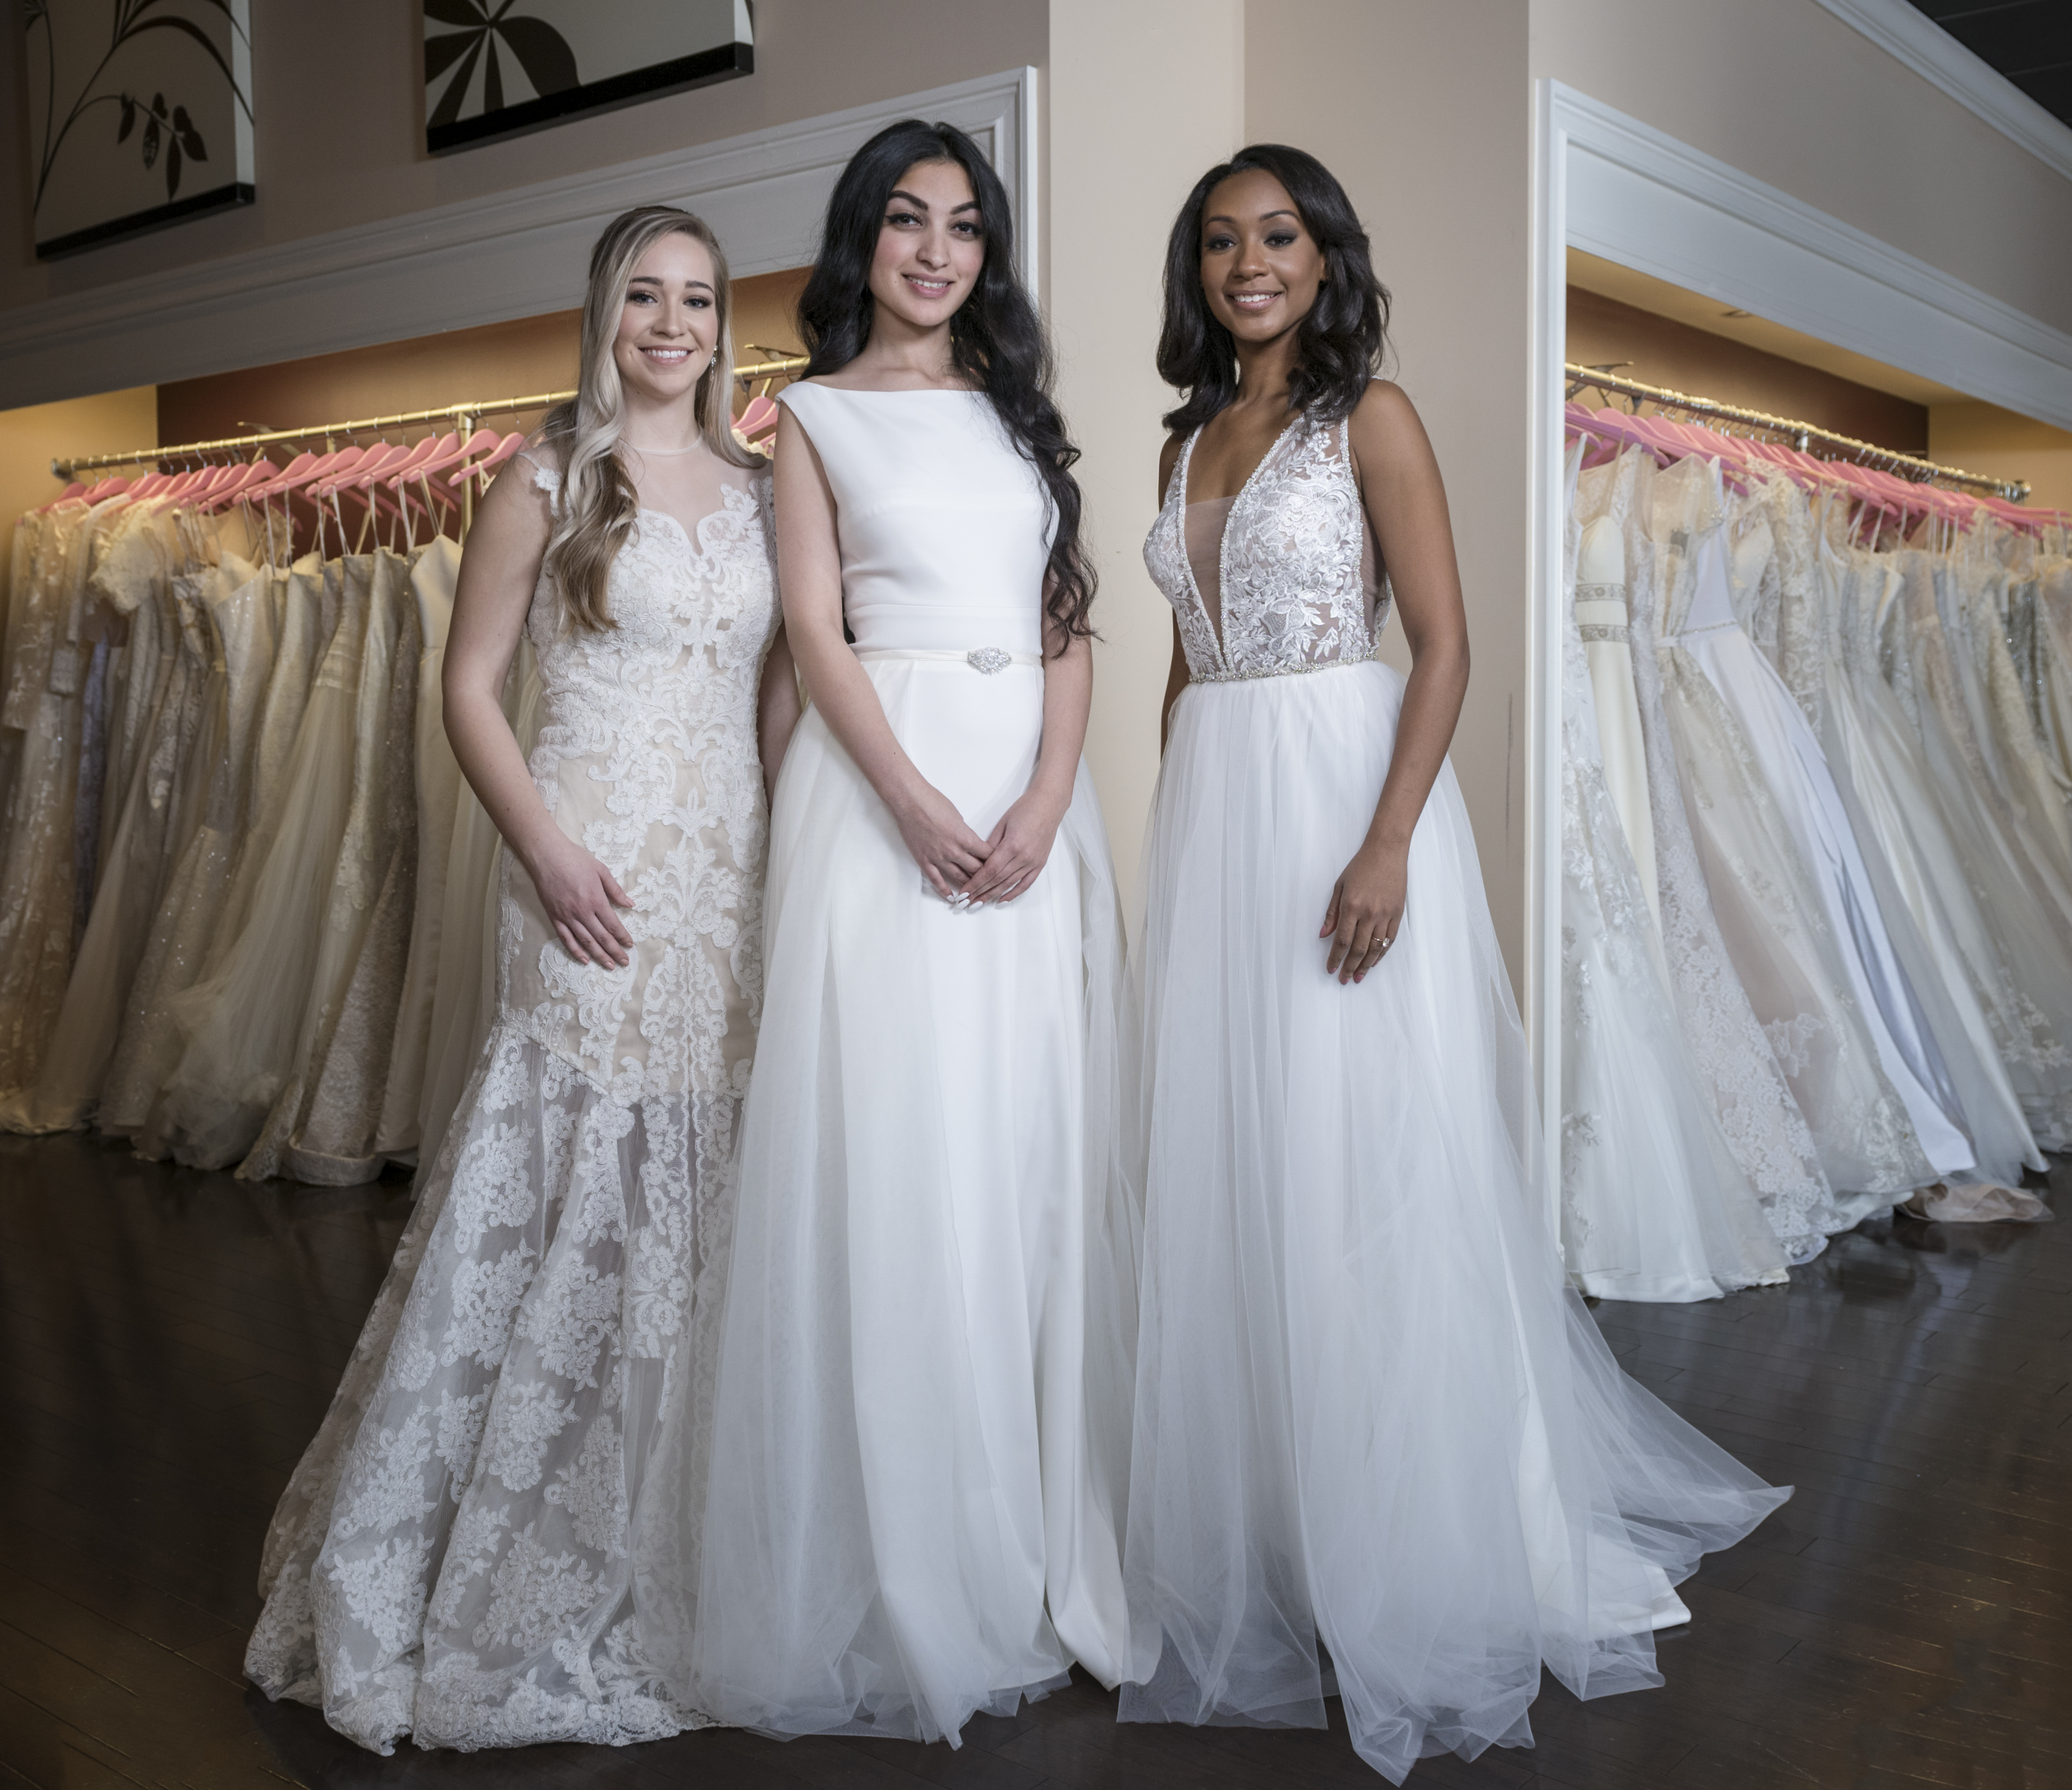 Best bridal shop near Washington DC|Best of VA, MD, DC weddings